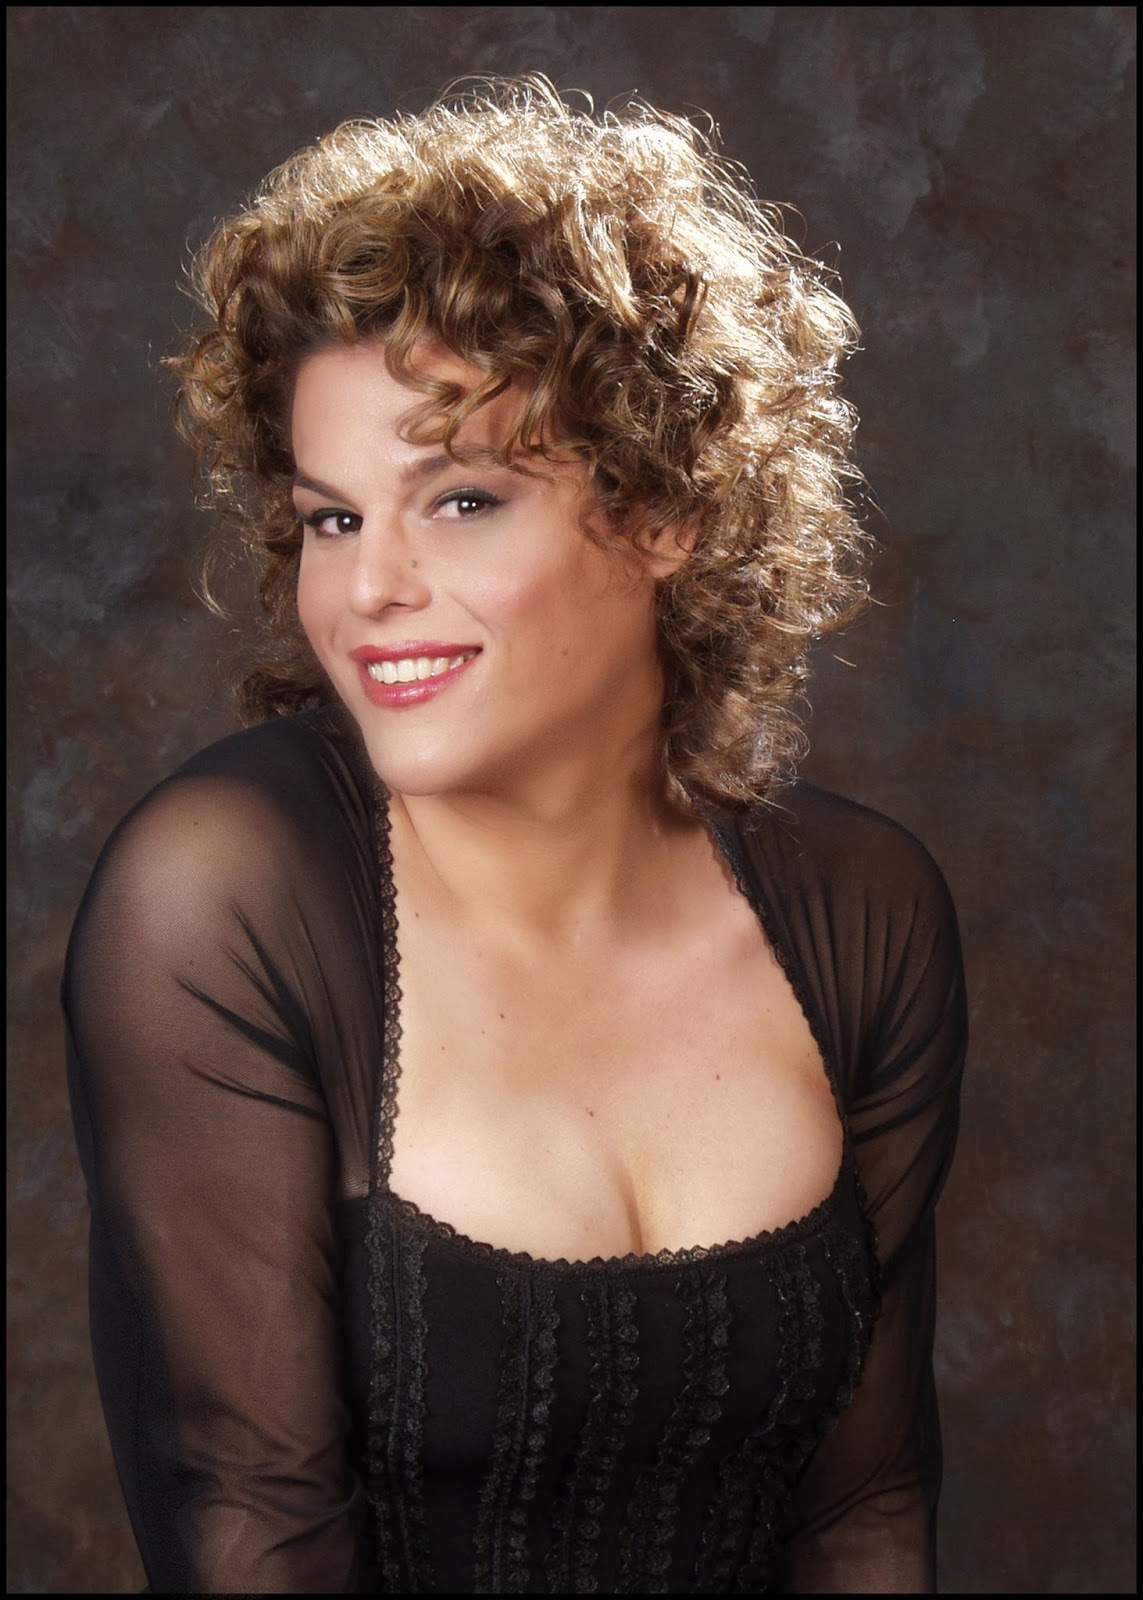 alexandra billings interview